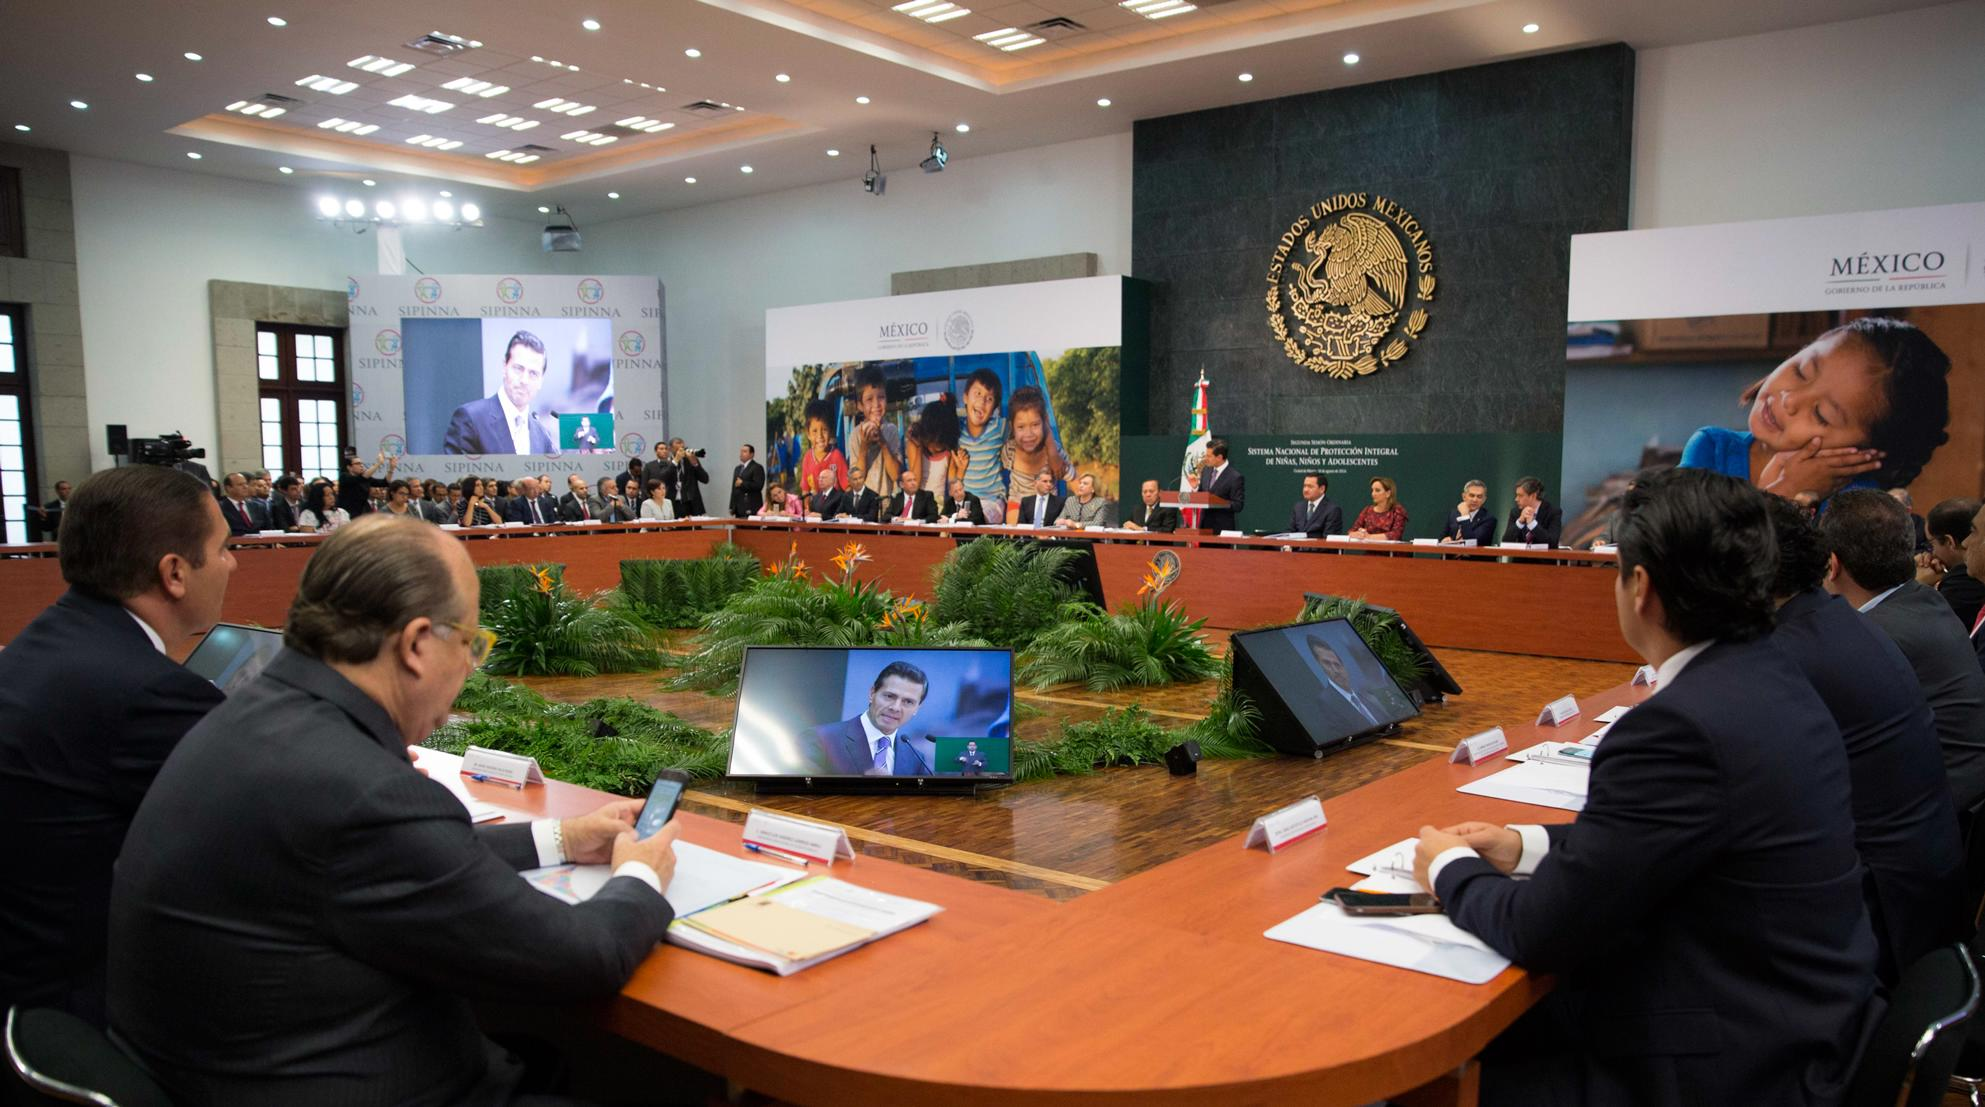 The president led the Second Ordinary Session of the National System for the Integral Protection of Children and Adolescents.